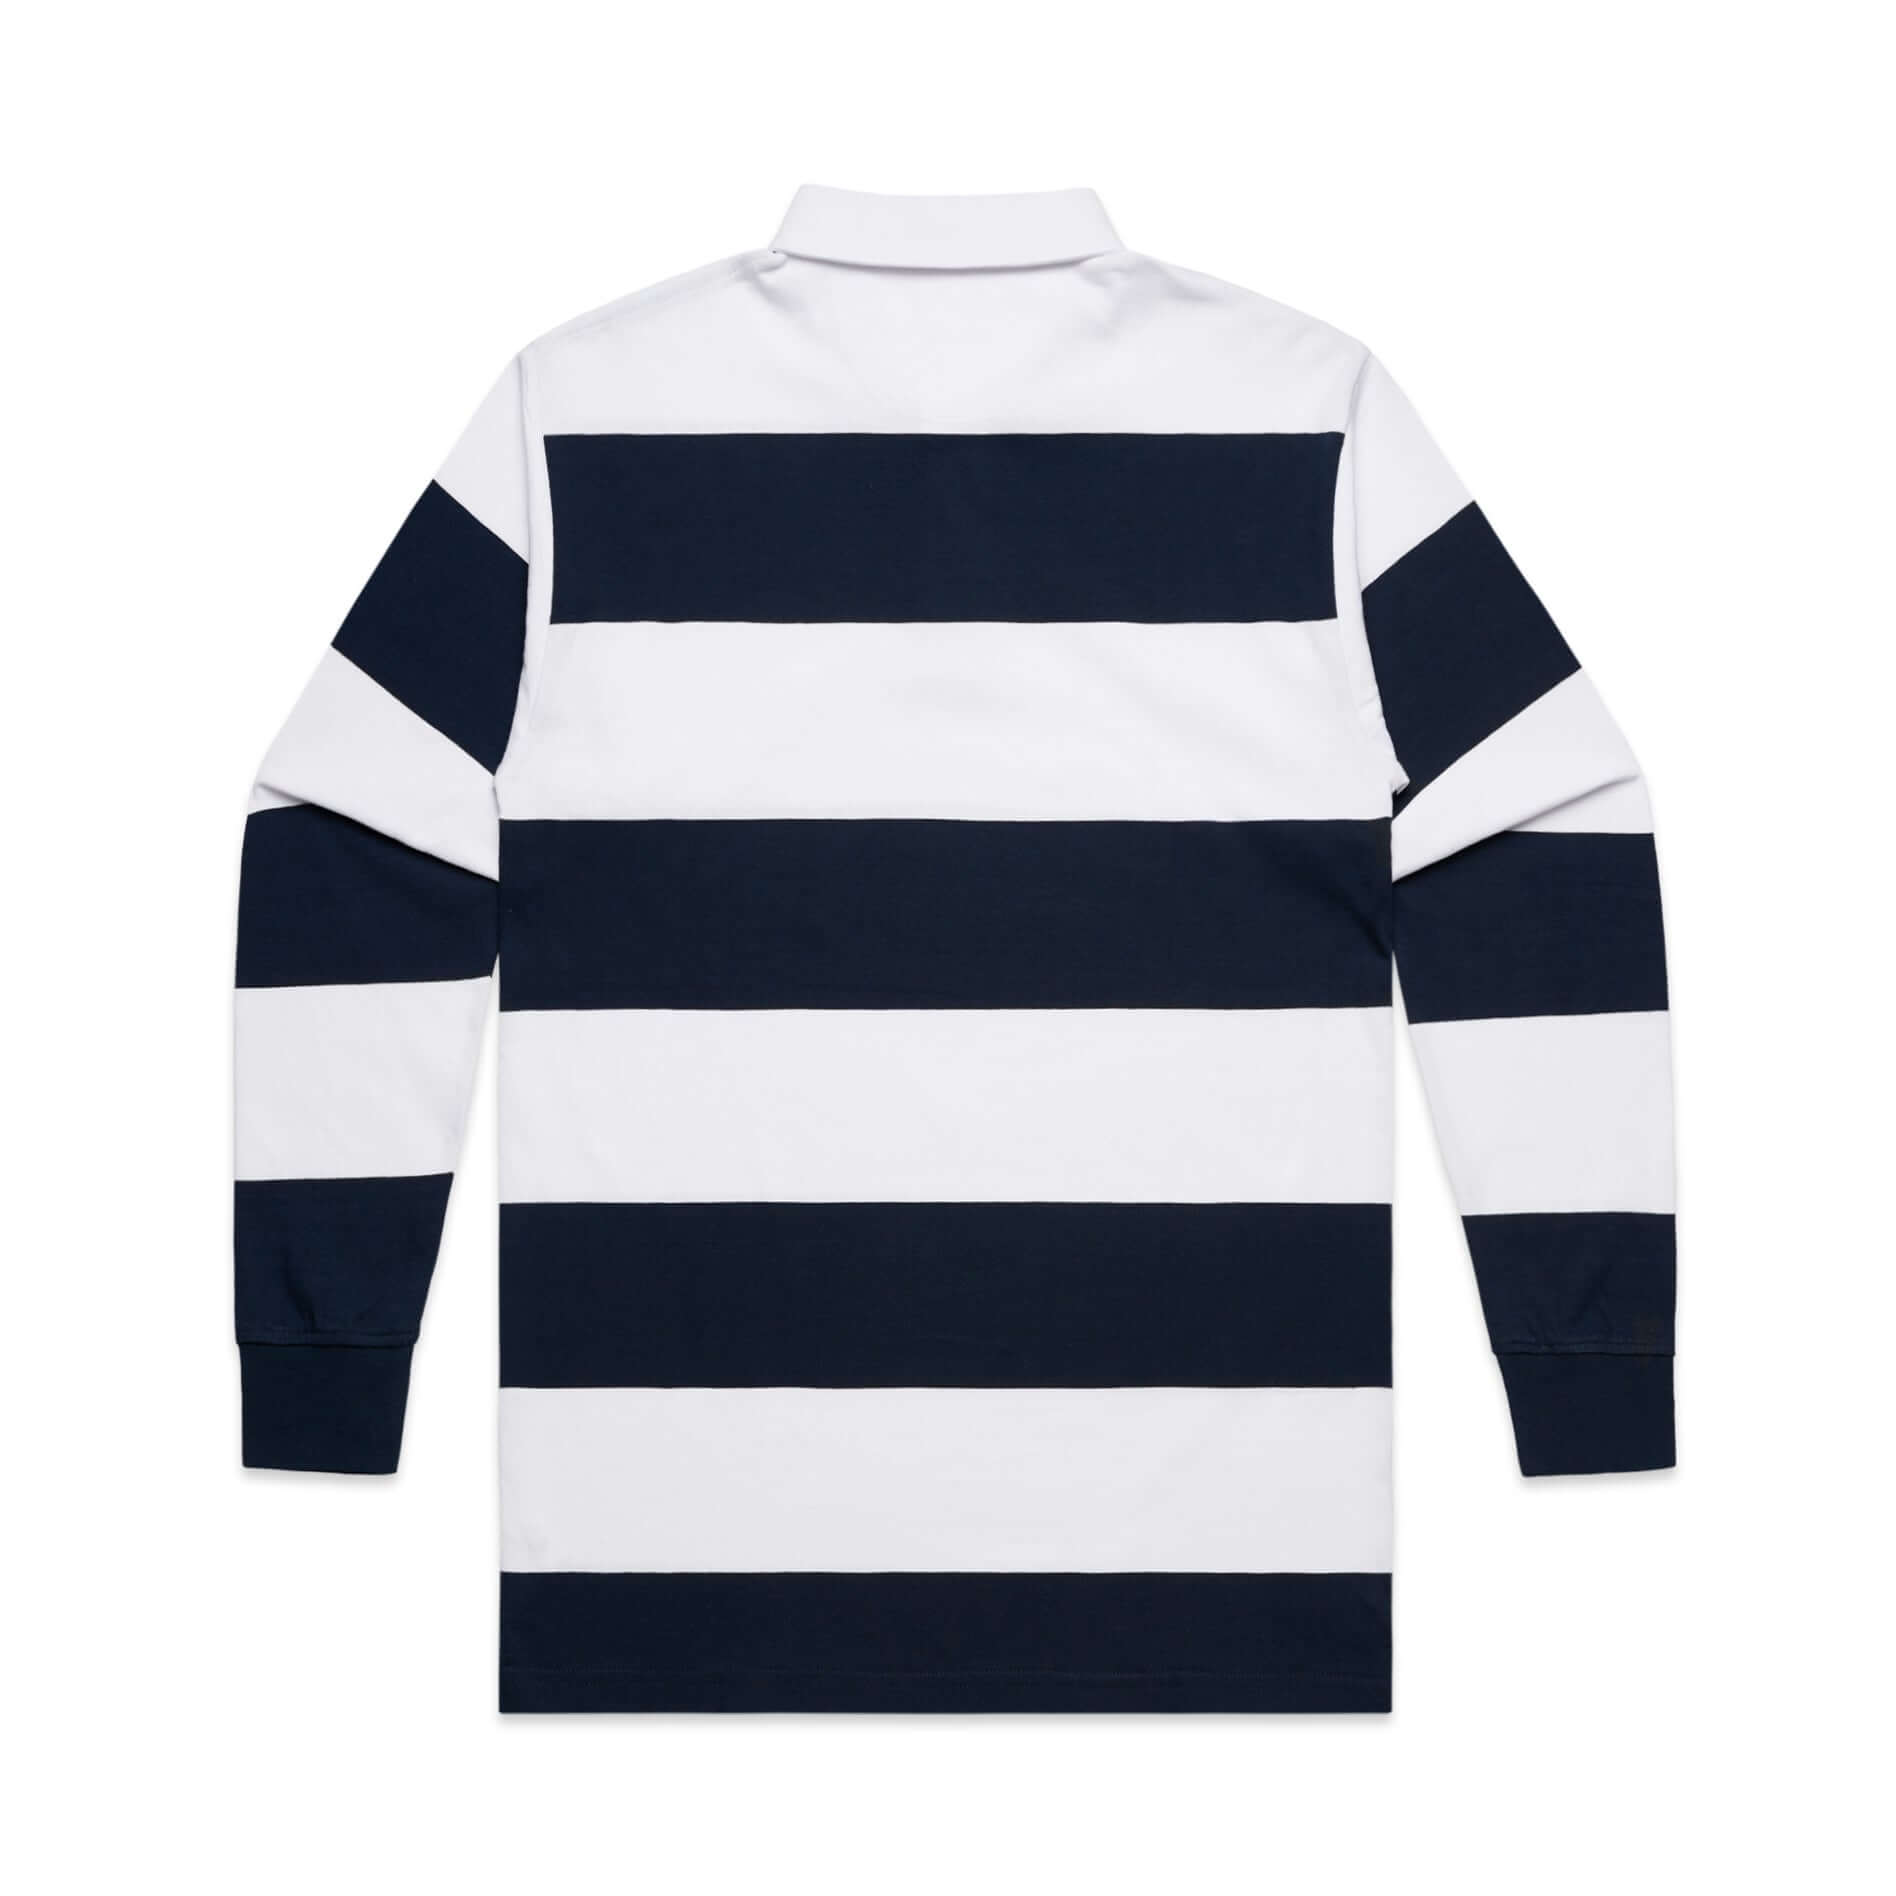 AS Colour RUGBY JERSEY - Navy/White